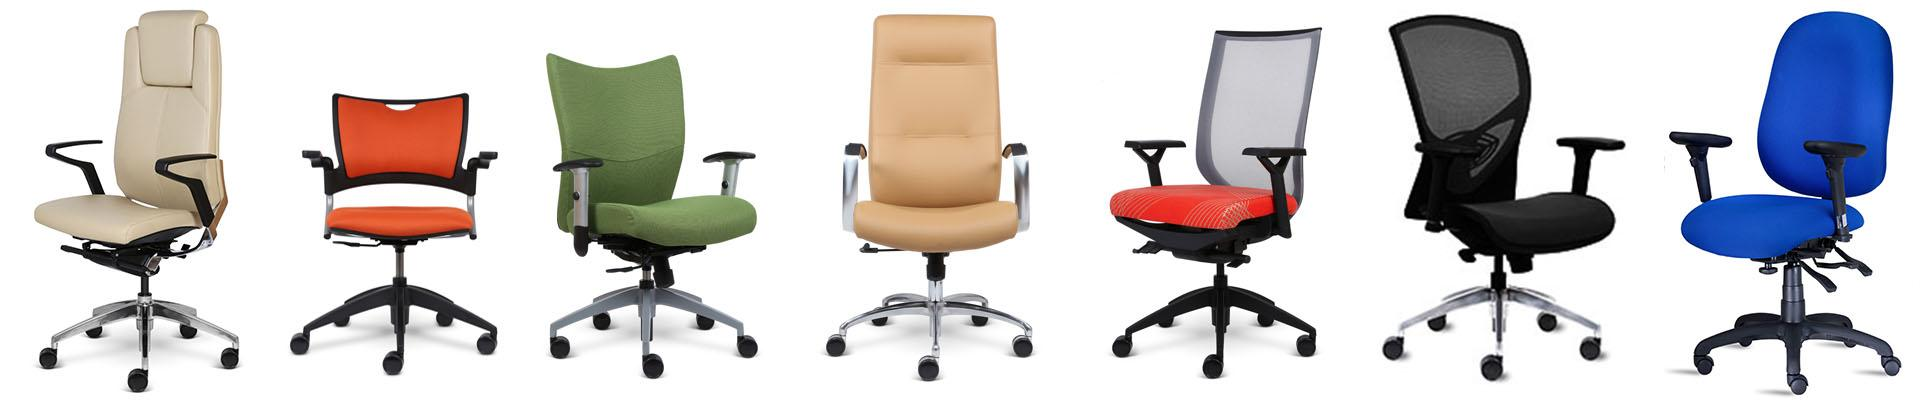 piedmont office suppliers. office chairs piedmont suppliers